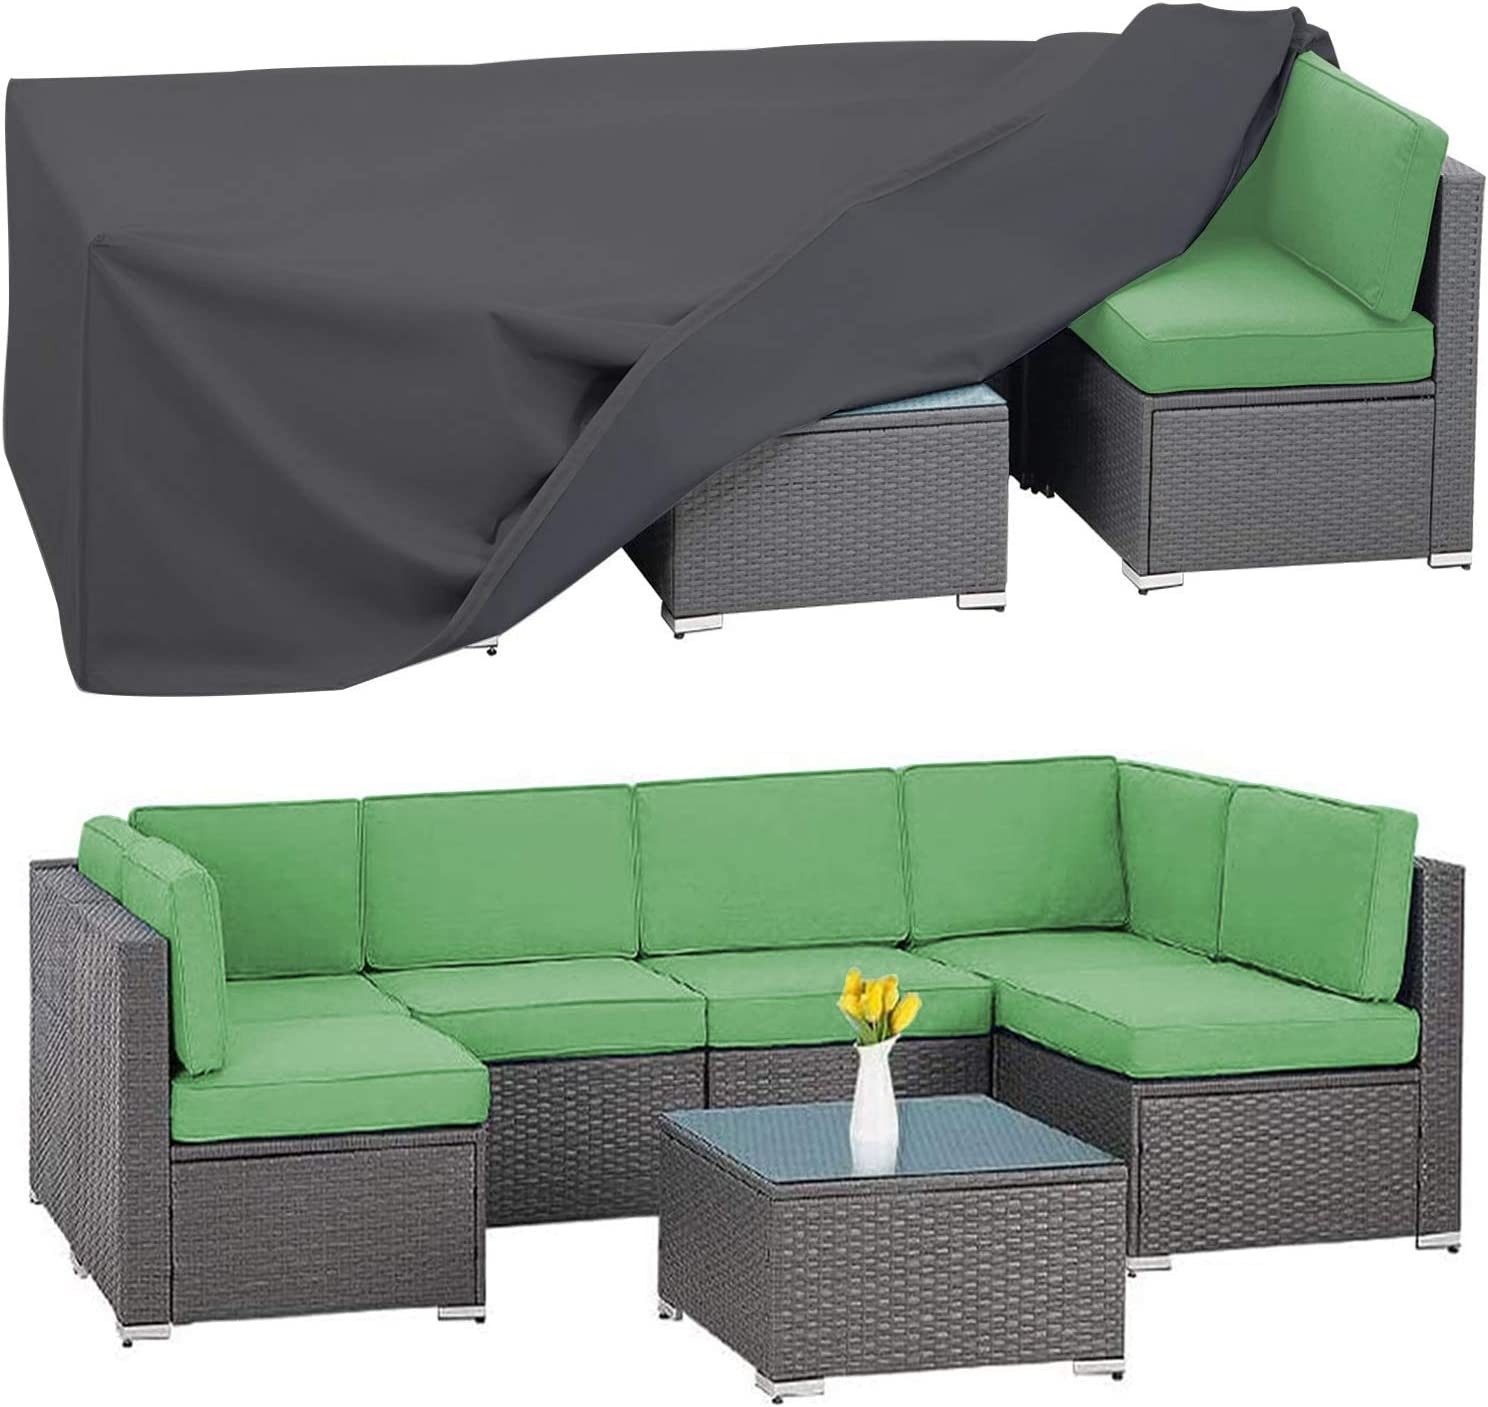 AKEfit Patio Furniture Set Cover Outdoor Seattle Mall Duty Heavy S Waterproof Special price